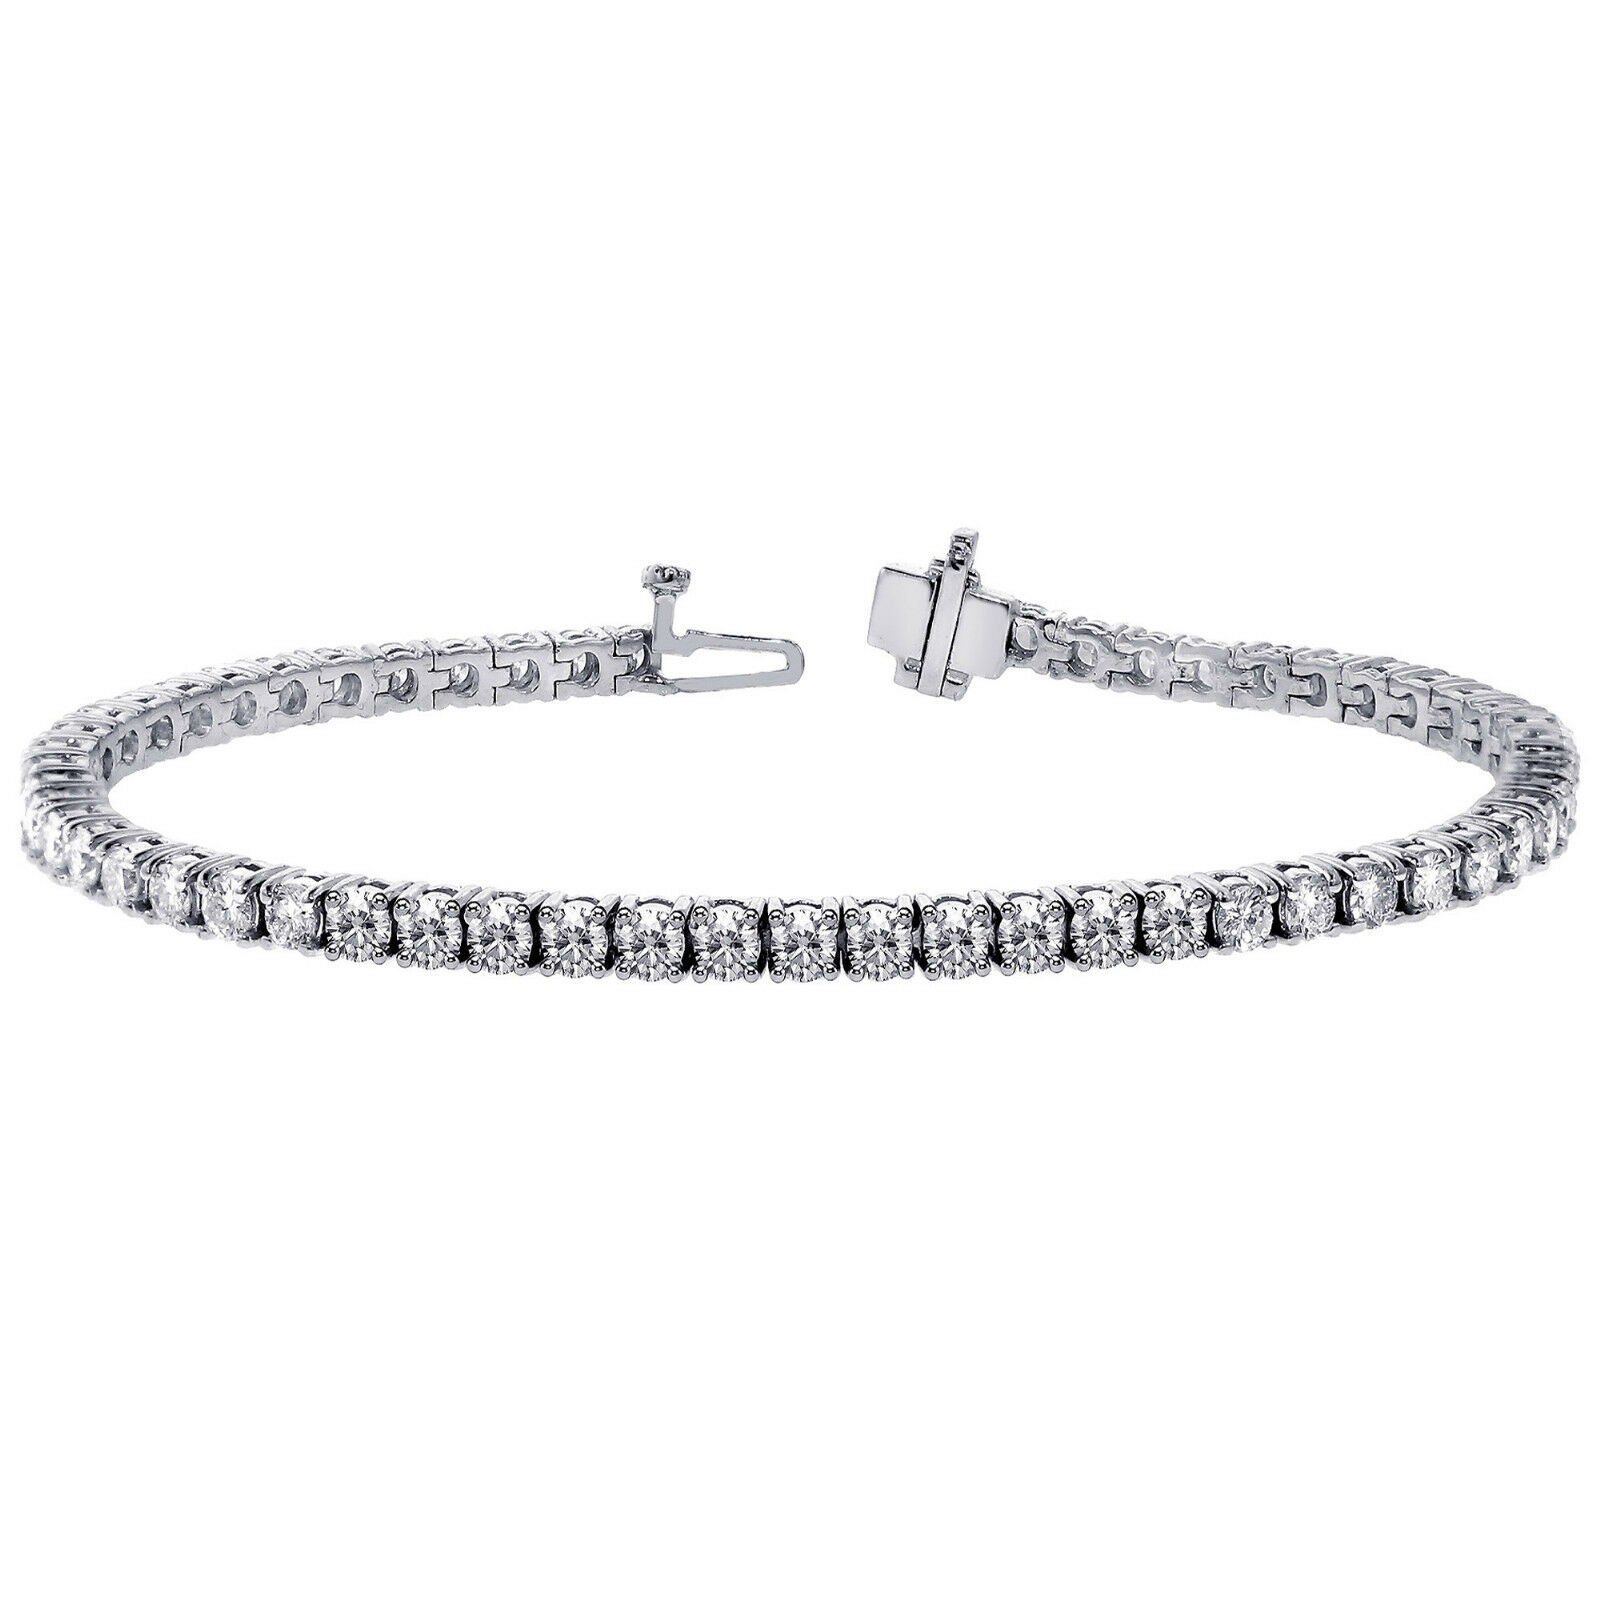 18Carat White gold Diamond Tennis Bracelet 4-Claw Setting 4.00 carats  7  Inches